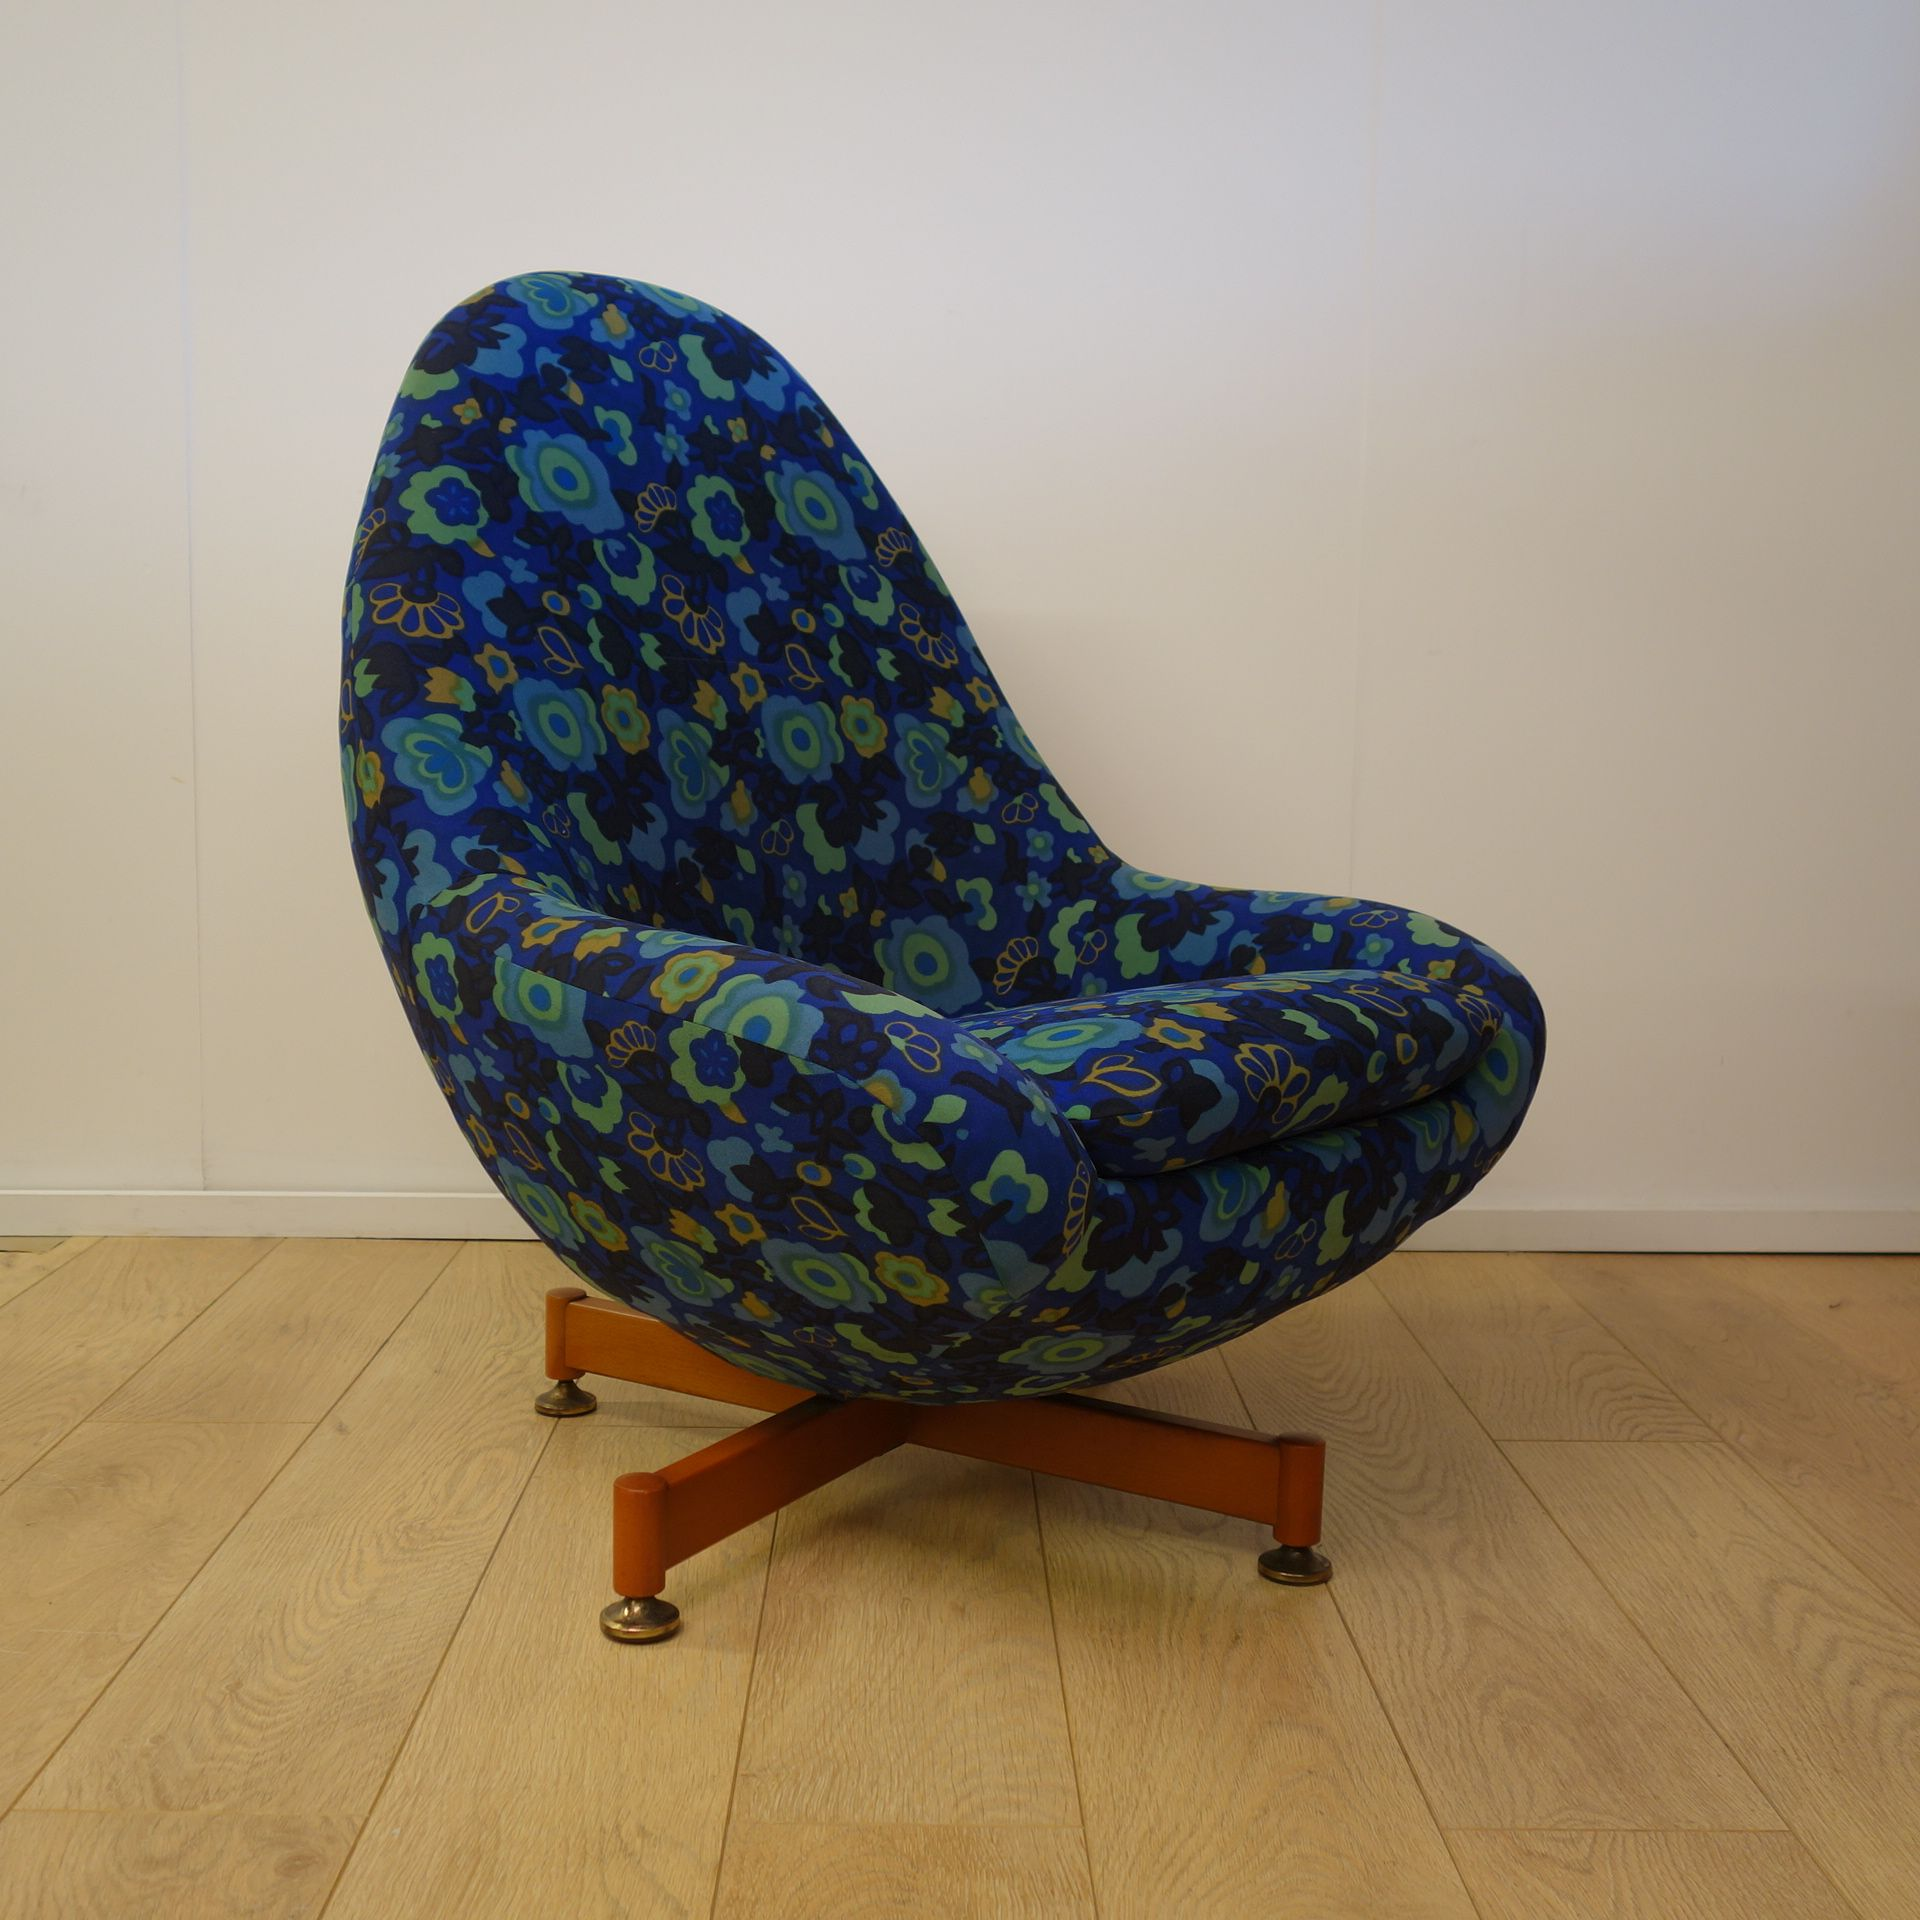 1960s Greaves and Thomas egg chair Chair Pinterest